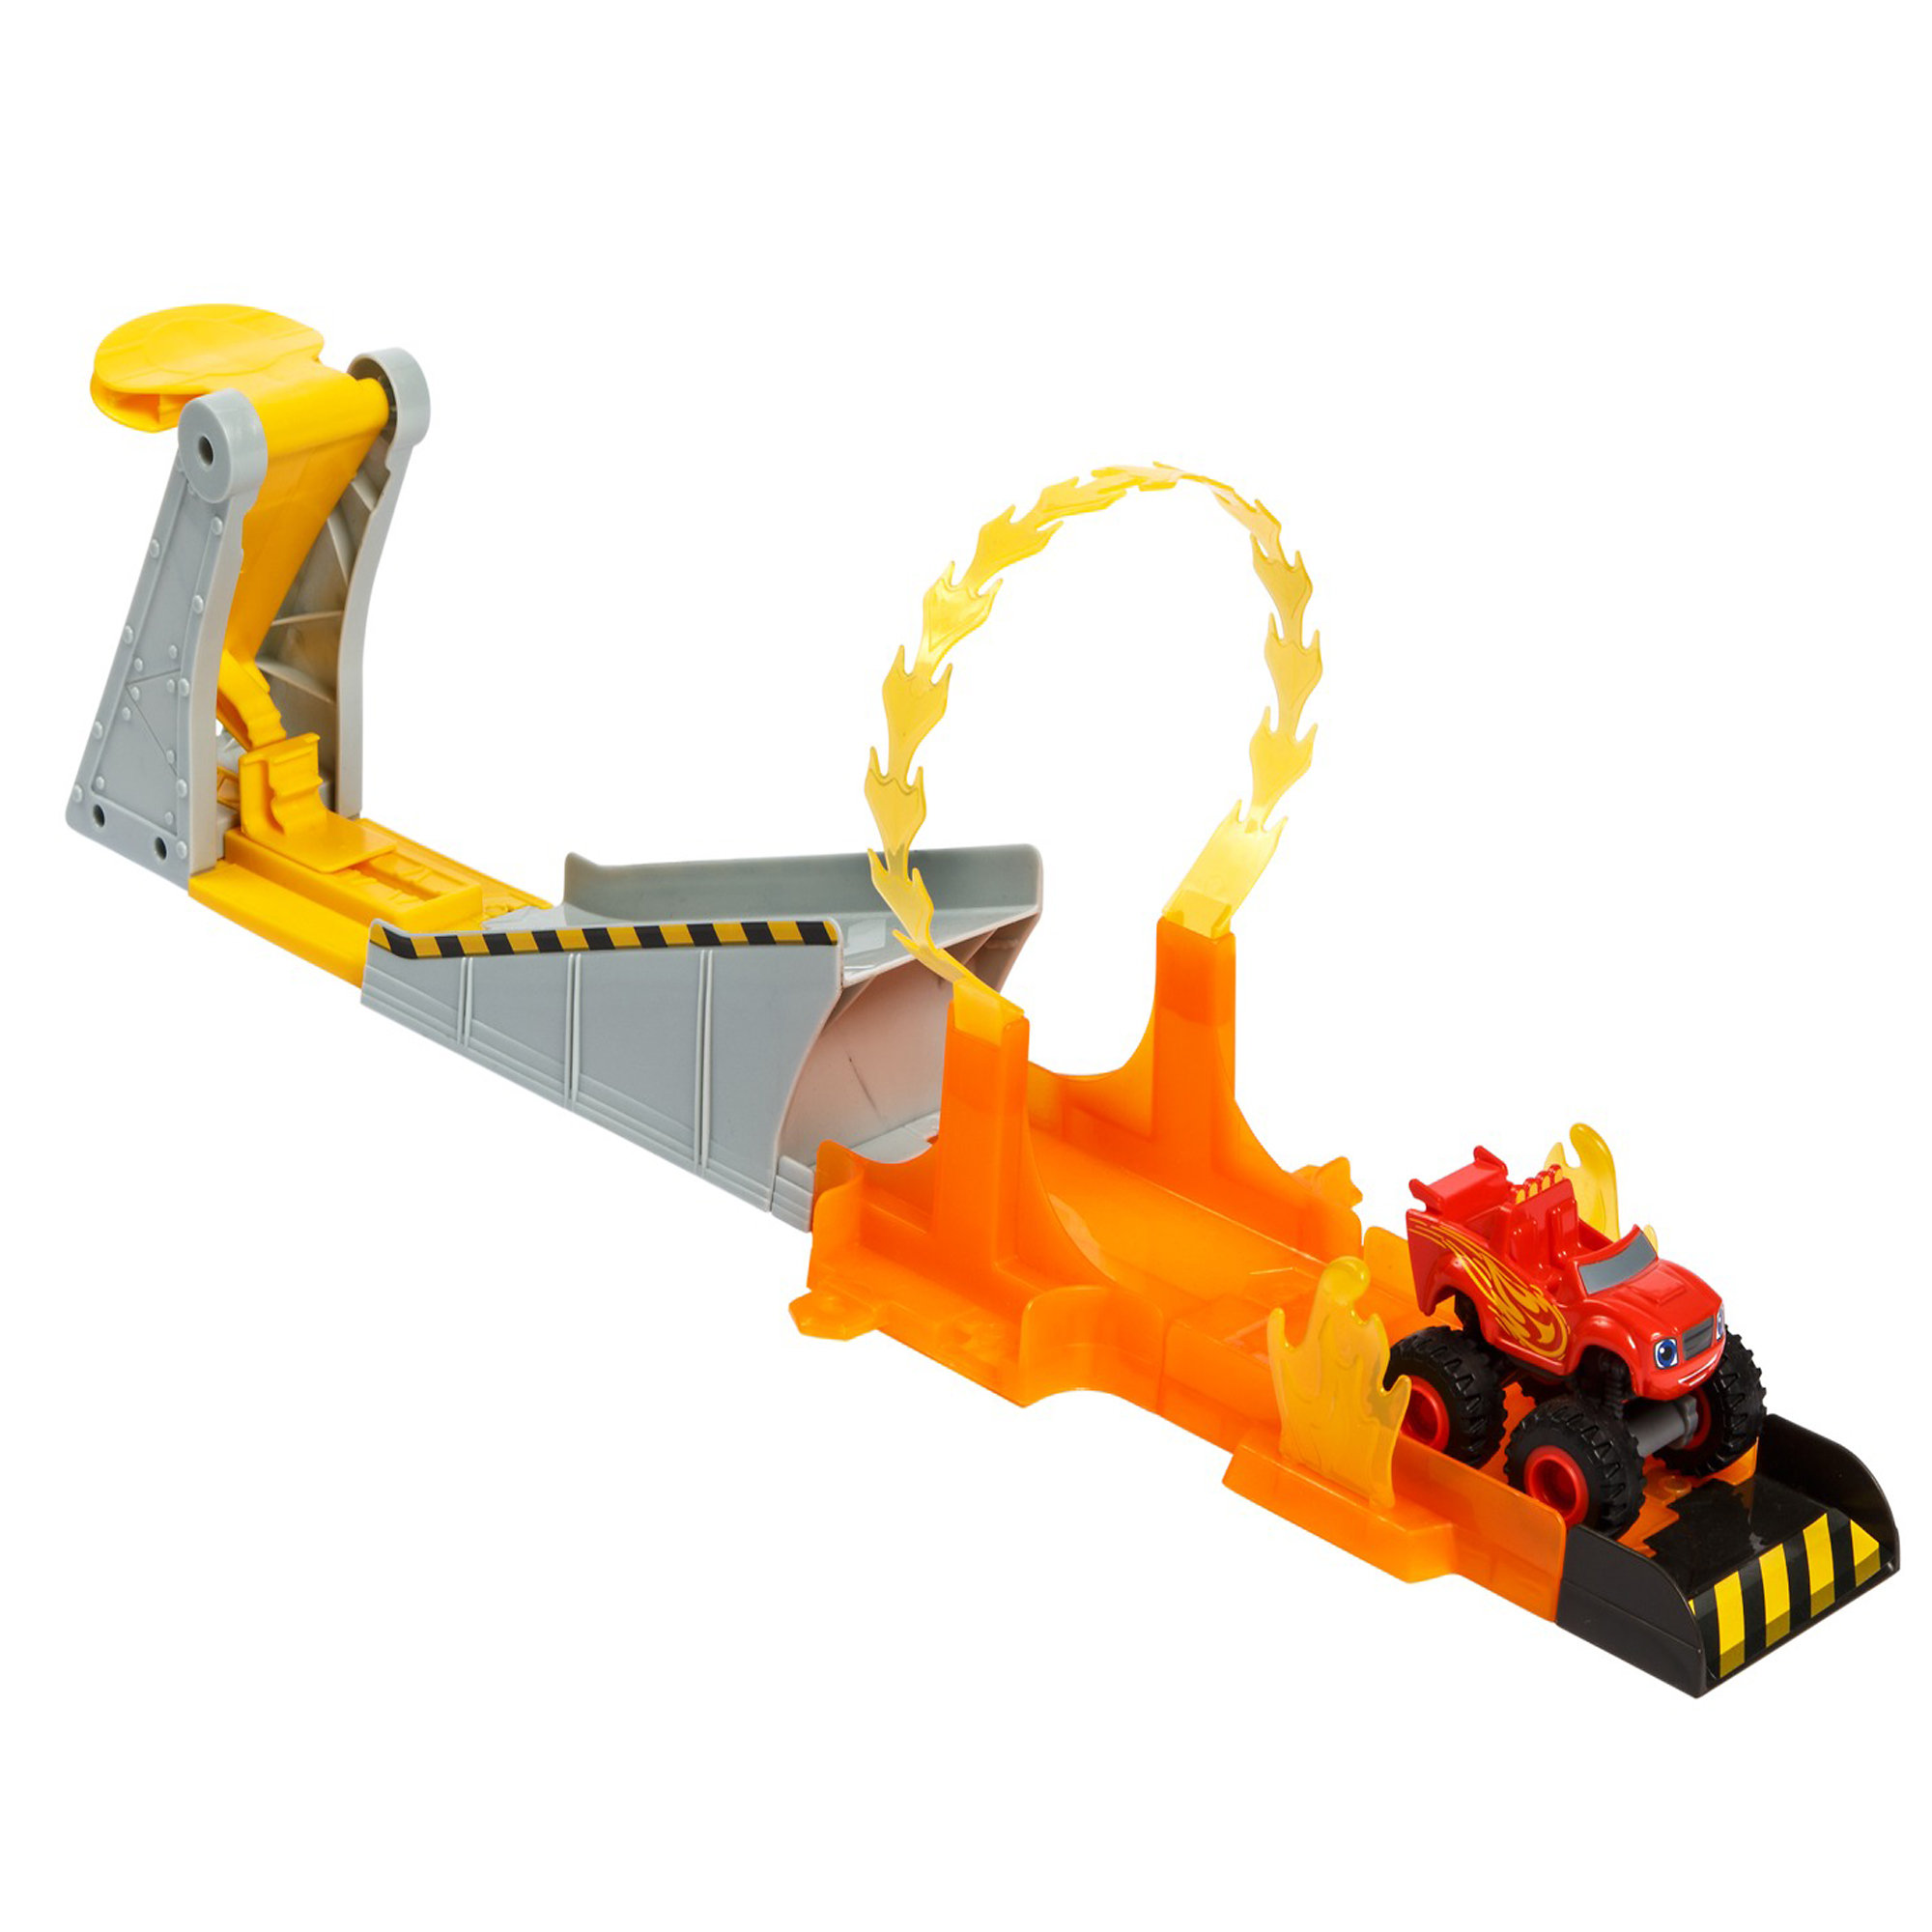 Fisher Price Nickelodeon Blaze And The Monster Machines Blazing Stunts Track Set by Mattel